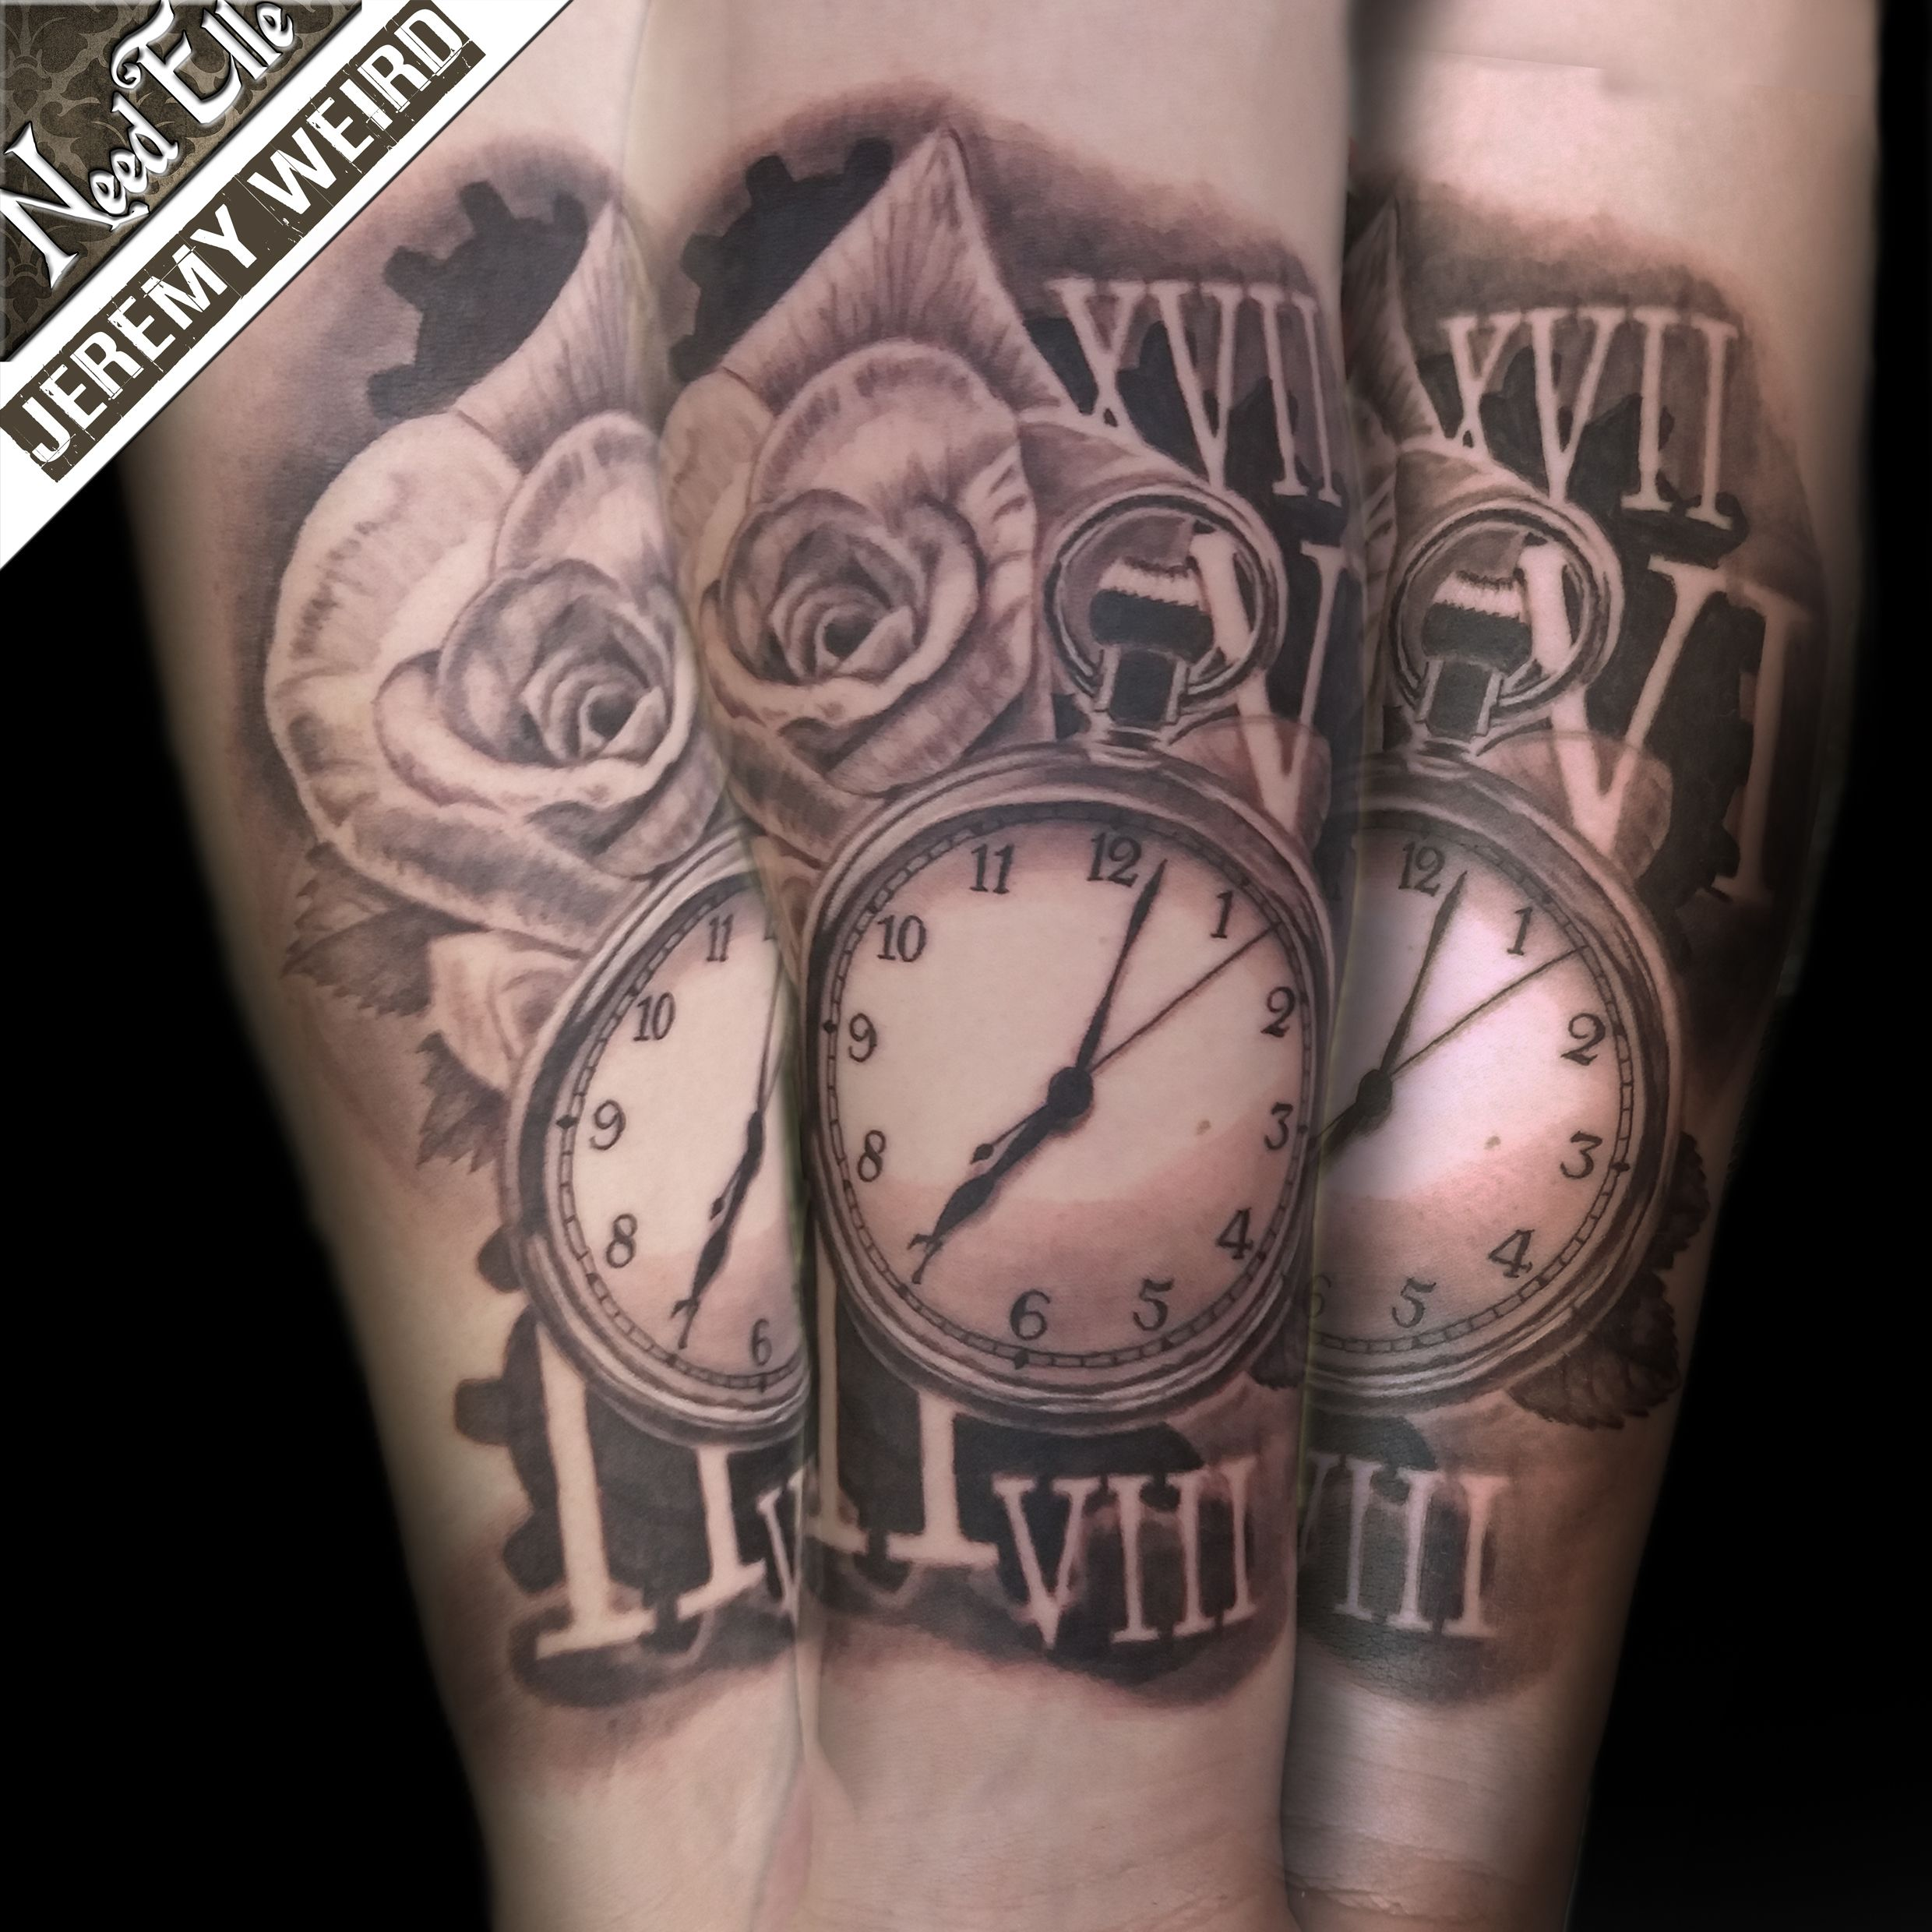 antic watch and rose tattoo by jeremy weird tatouage montre gousset rose et chiffres romains. Black Bedroom Furniture Sets. Home Design Ideas